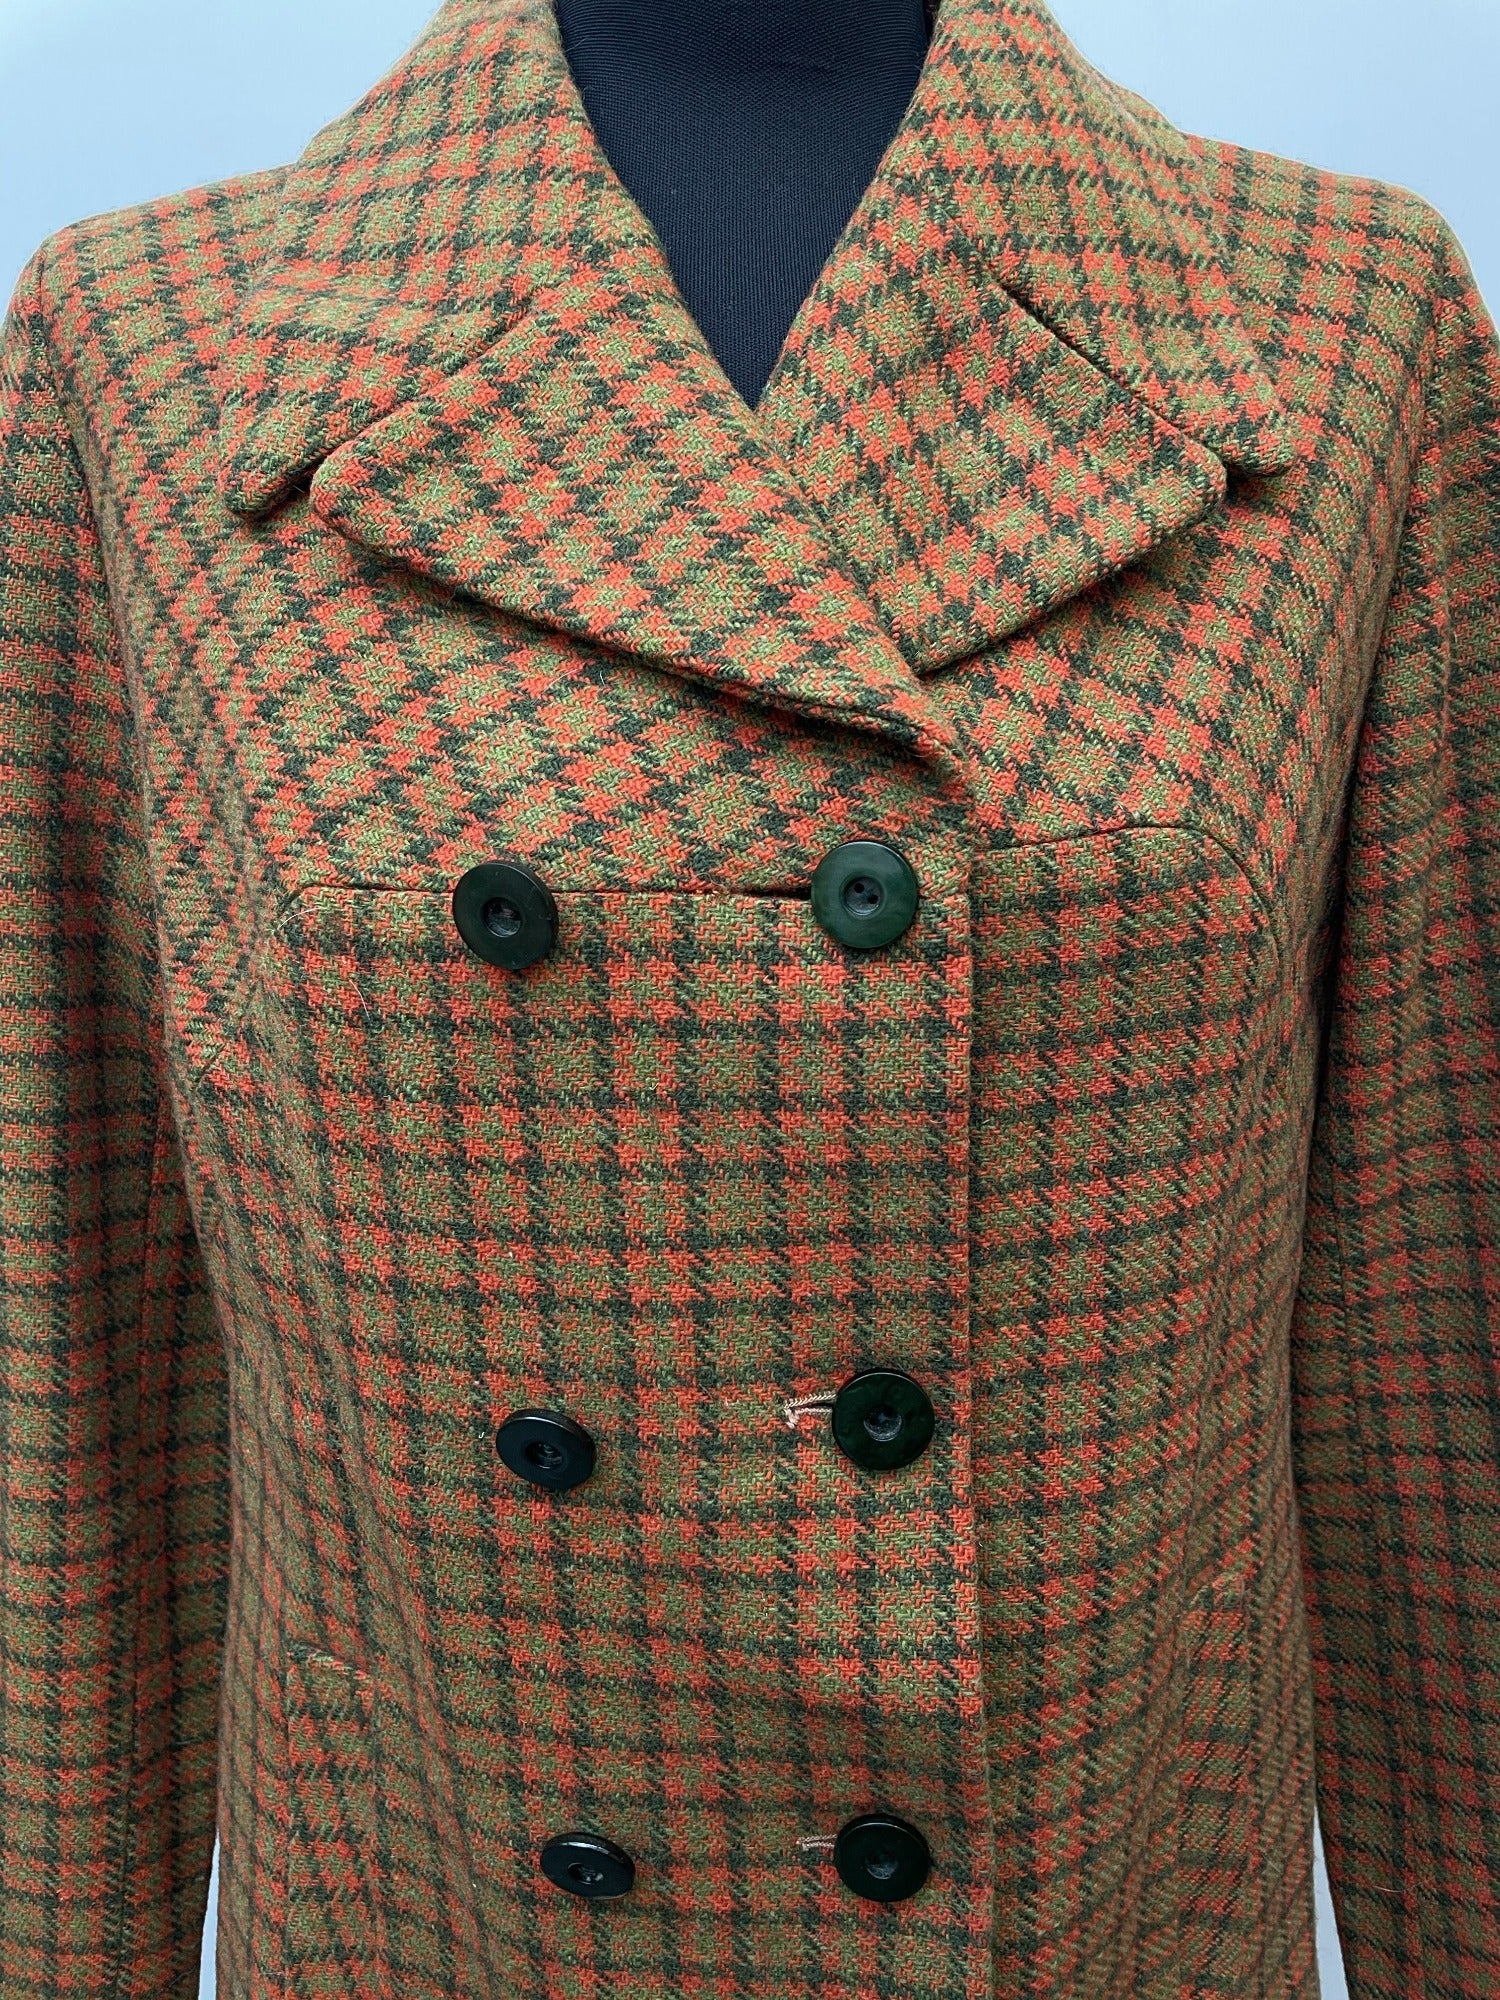 womens  vintage  Urban Village Vintage  urban village  tartan  retro  Red  lining  lined  Jacket  Green  double breasted coat  double breasted  dogtooth  decorative buttons  Cotton  coat  checkered  checked  button down  button  blazer jacket  Blazer  70s  70  1970s